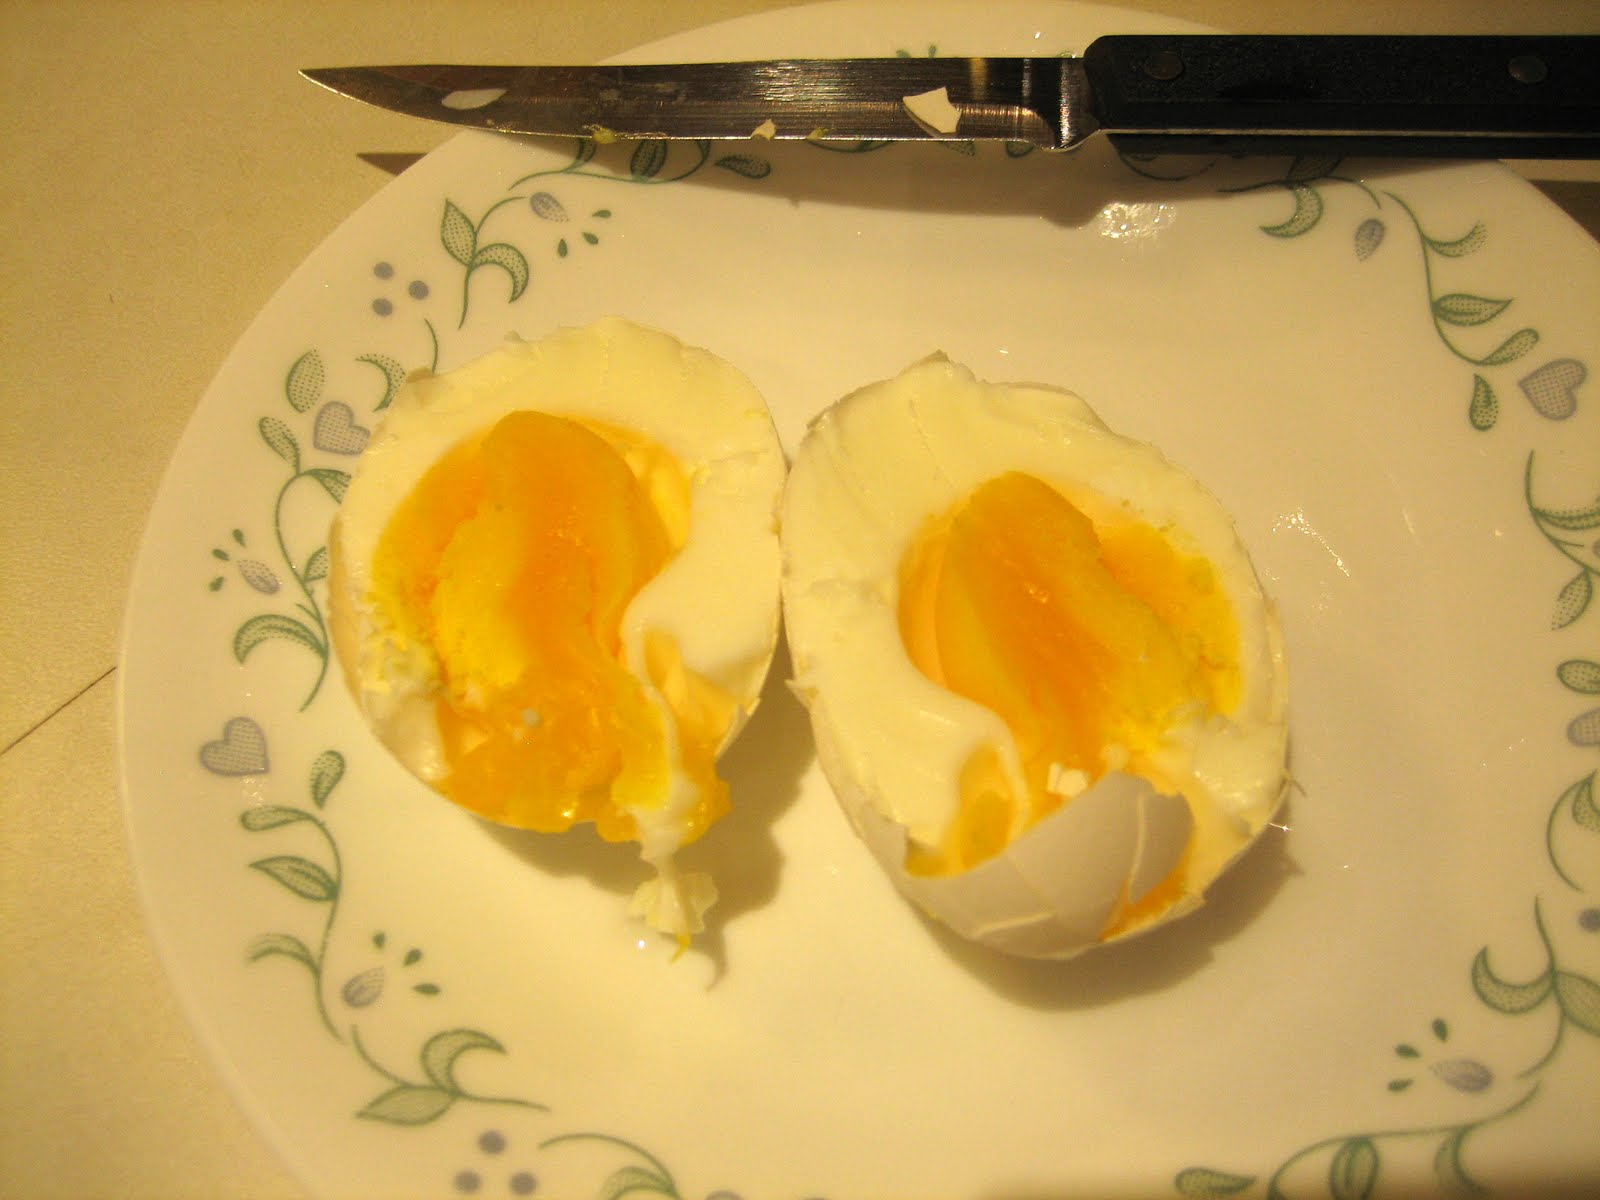 If You Fucks Want A Medium Boiled Egg (whites Done And Yellow Mostly Done),  Let The Egg Cook For 8 Minutes, And Then A 10 Minute Cold Water Cool Down